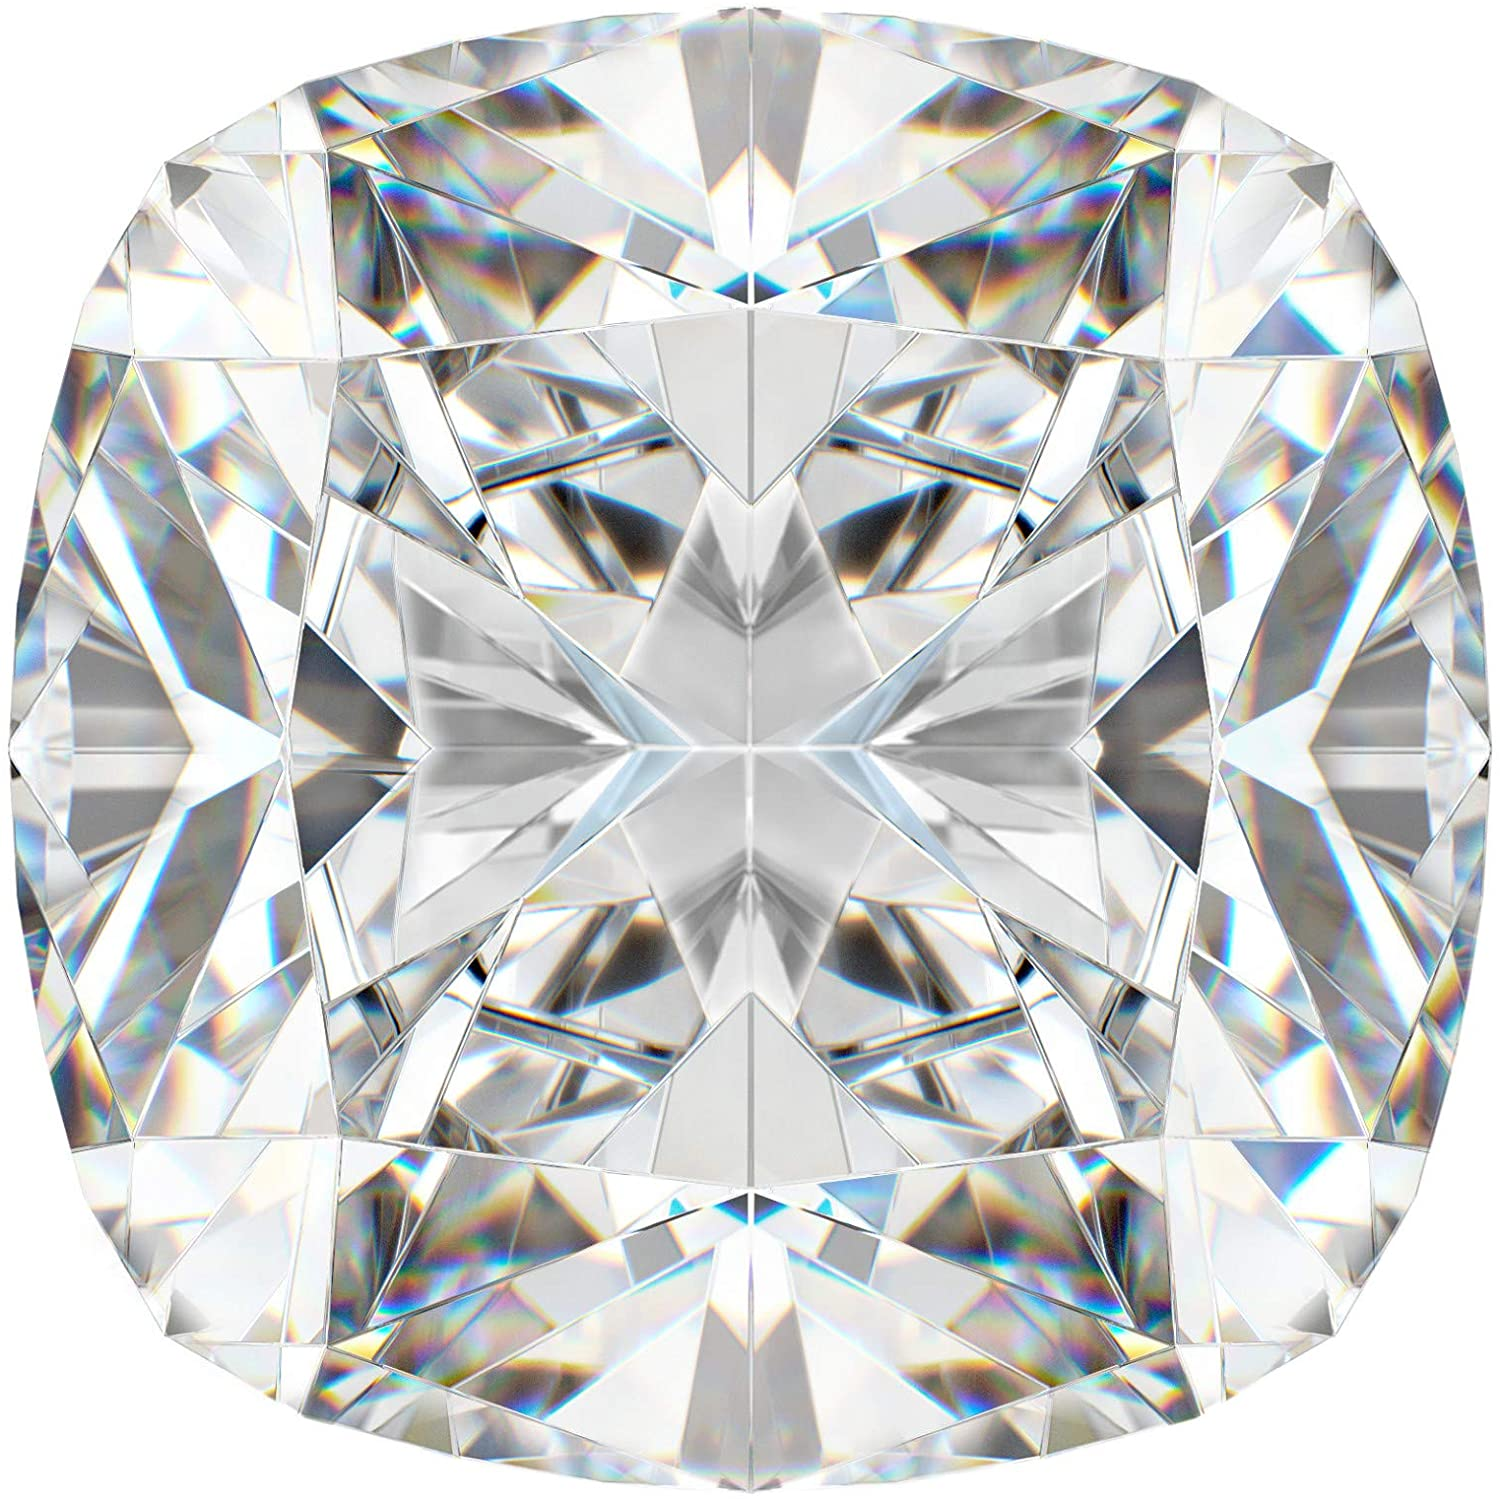 Bhumi Gems 6CT Cushion Cut Loose Moissanite VVS1 Clarity, Loose Gemstone for Engagement Ring & Jewelry Use for Pendant/Ring/Earring/Gift/Necklace/Bracelat Making